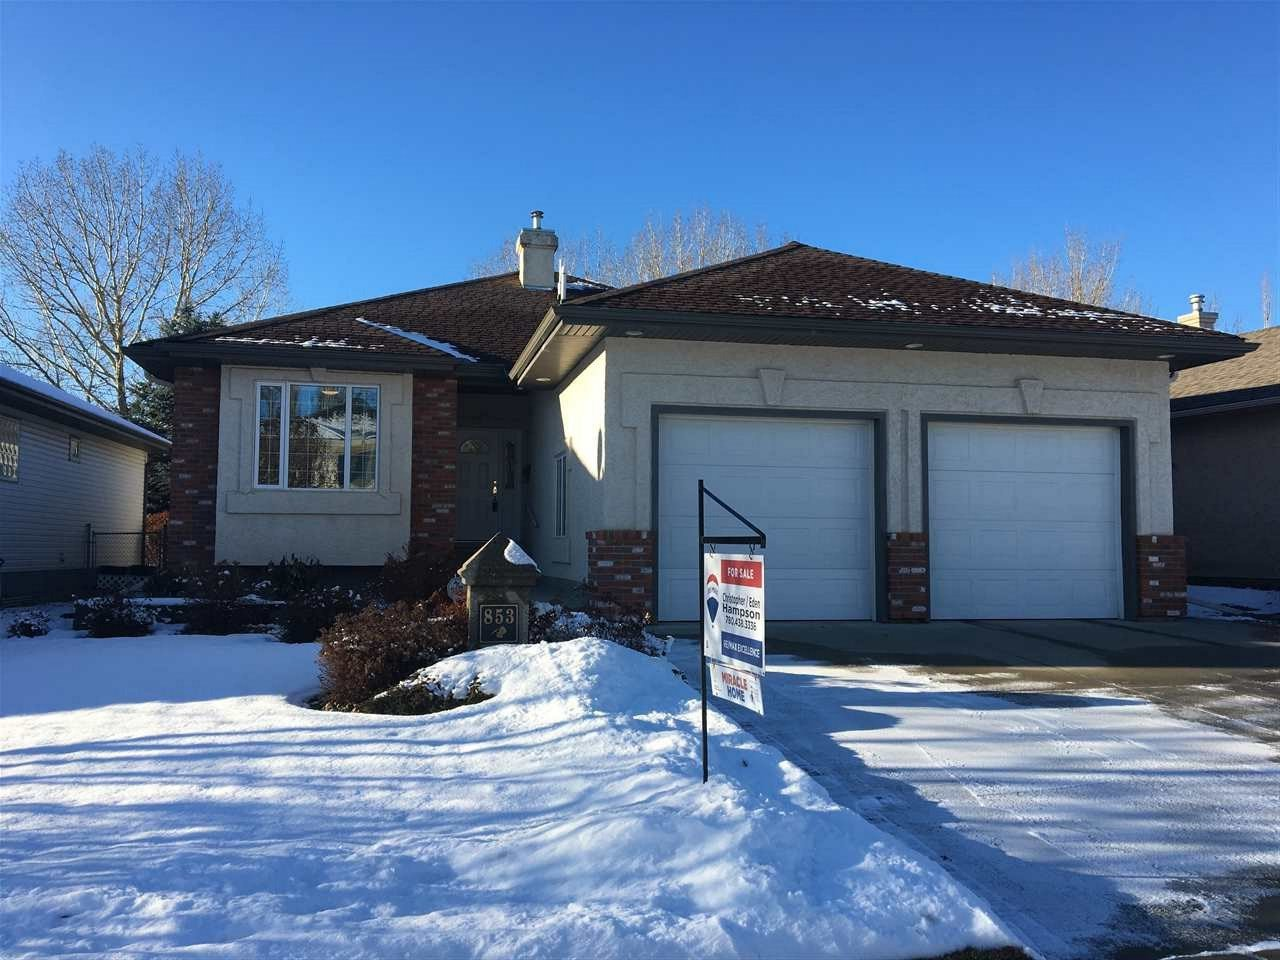 Main Photo: 853 PROCTOR Wynd in Edmonton: Zone 58 House for sale : MLS®# E4175464